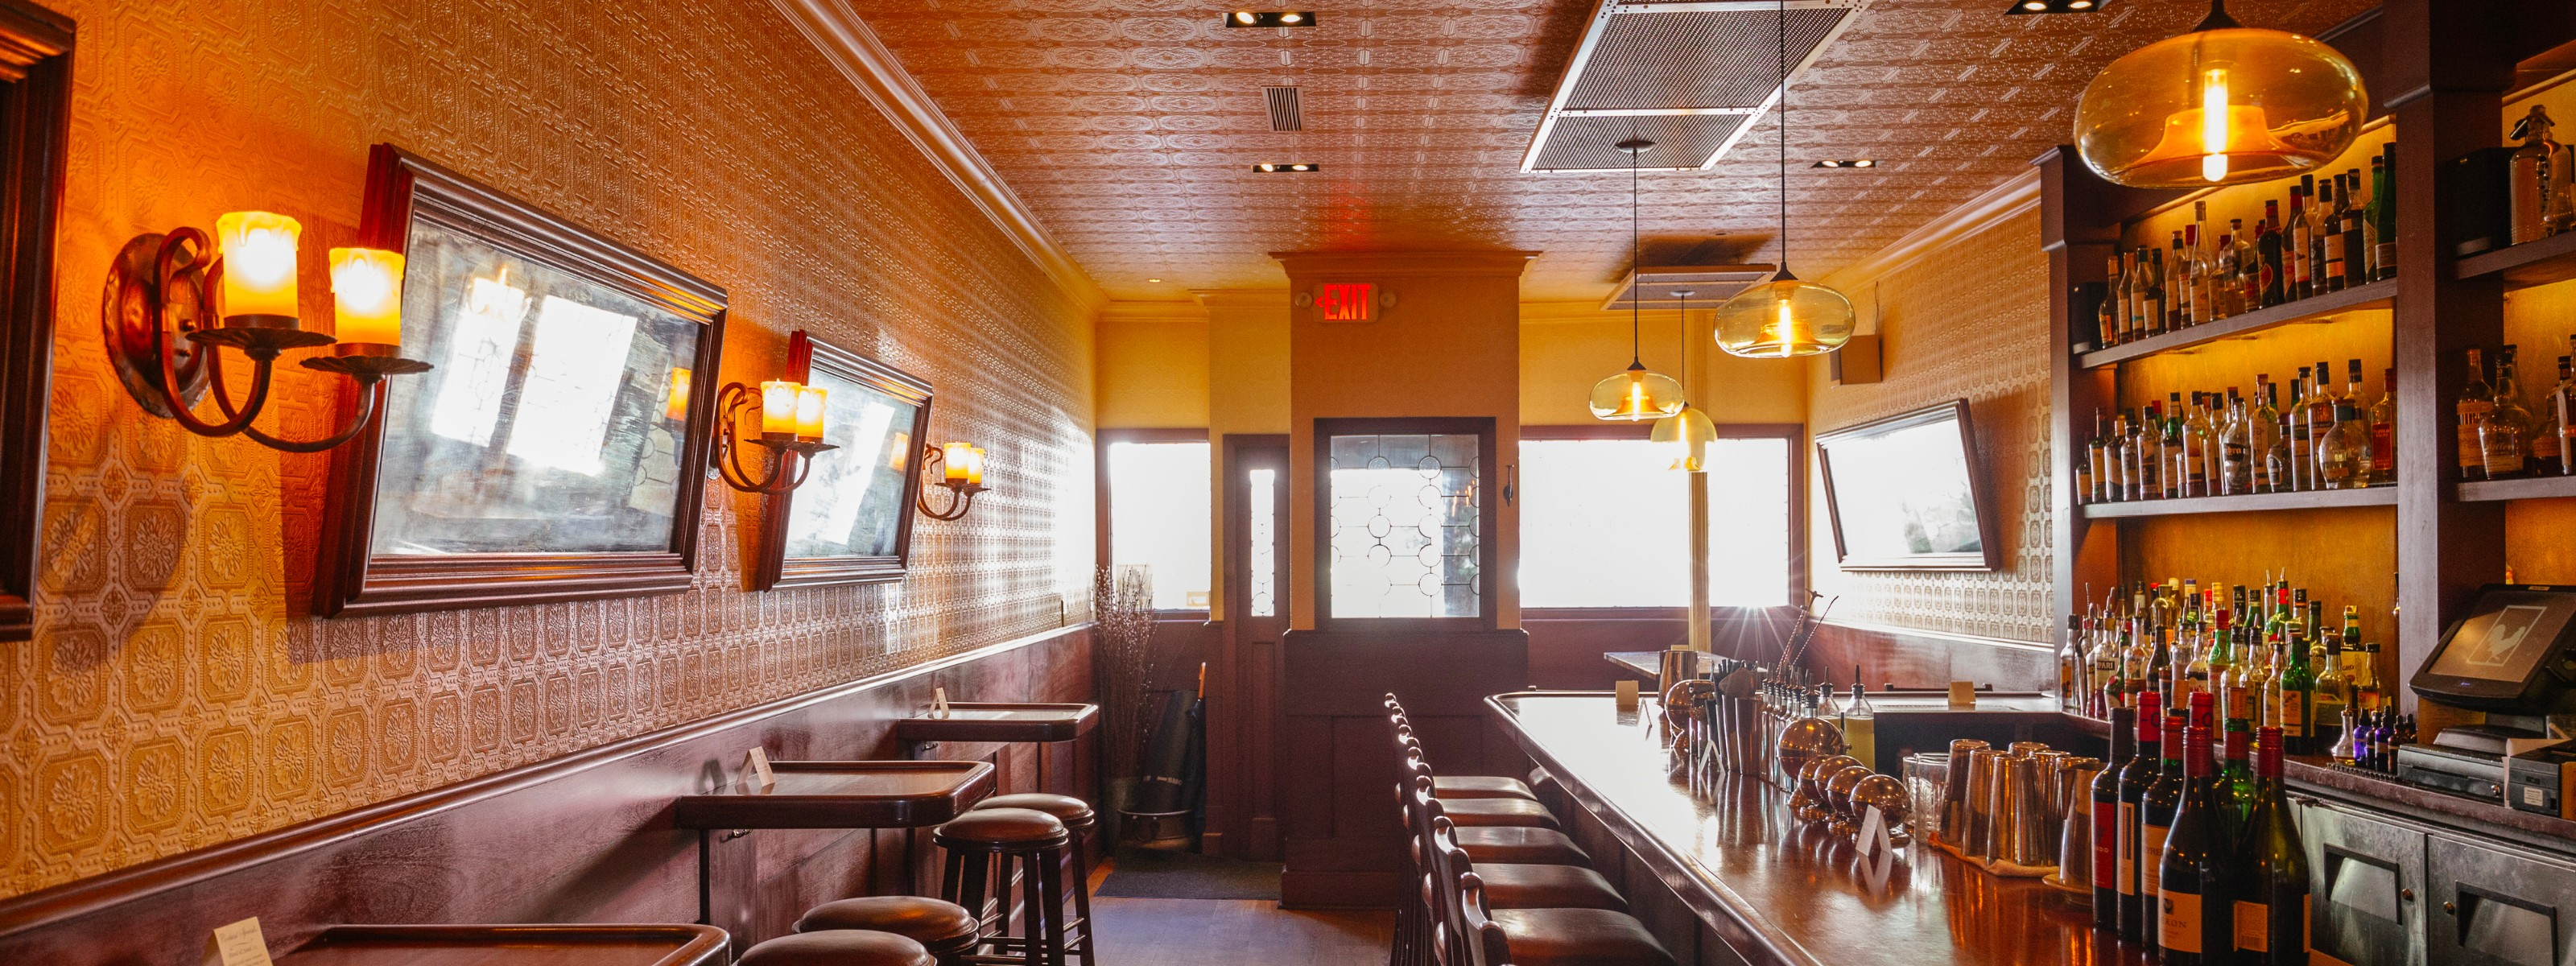 Park Slope's Best Places To Eat & Drink - New York - The ...